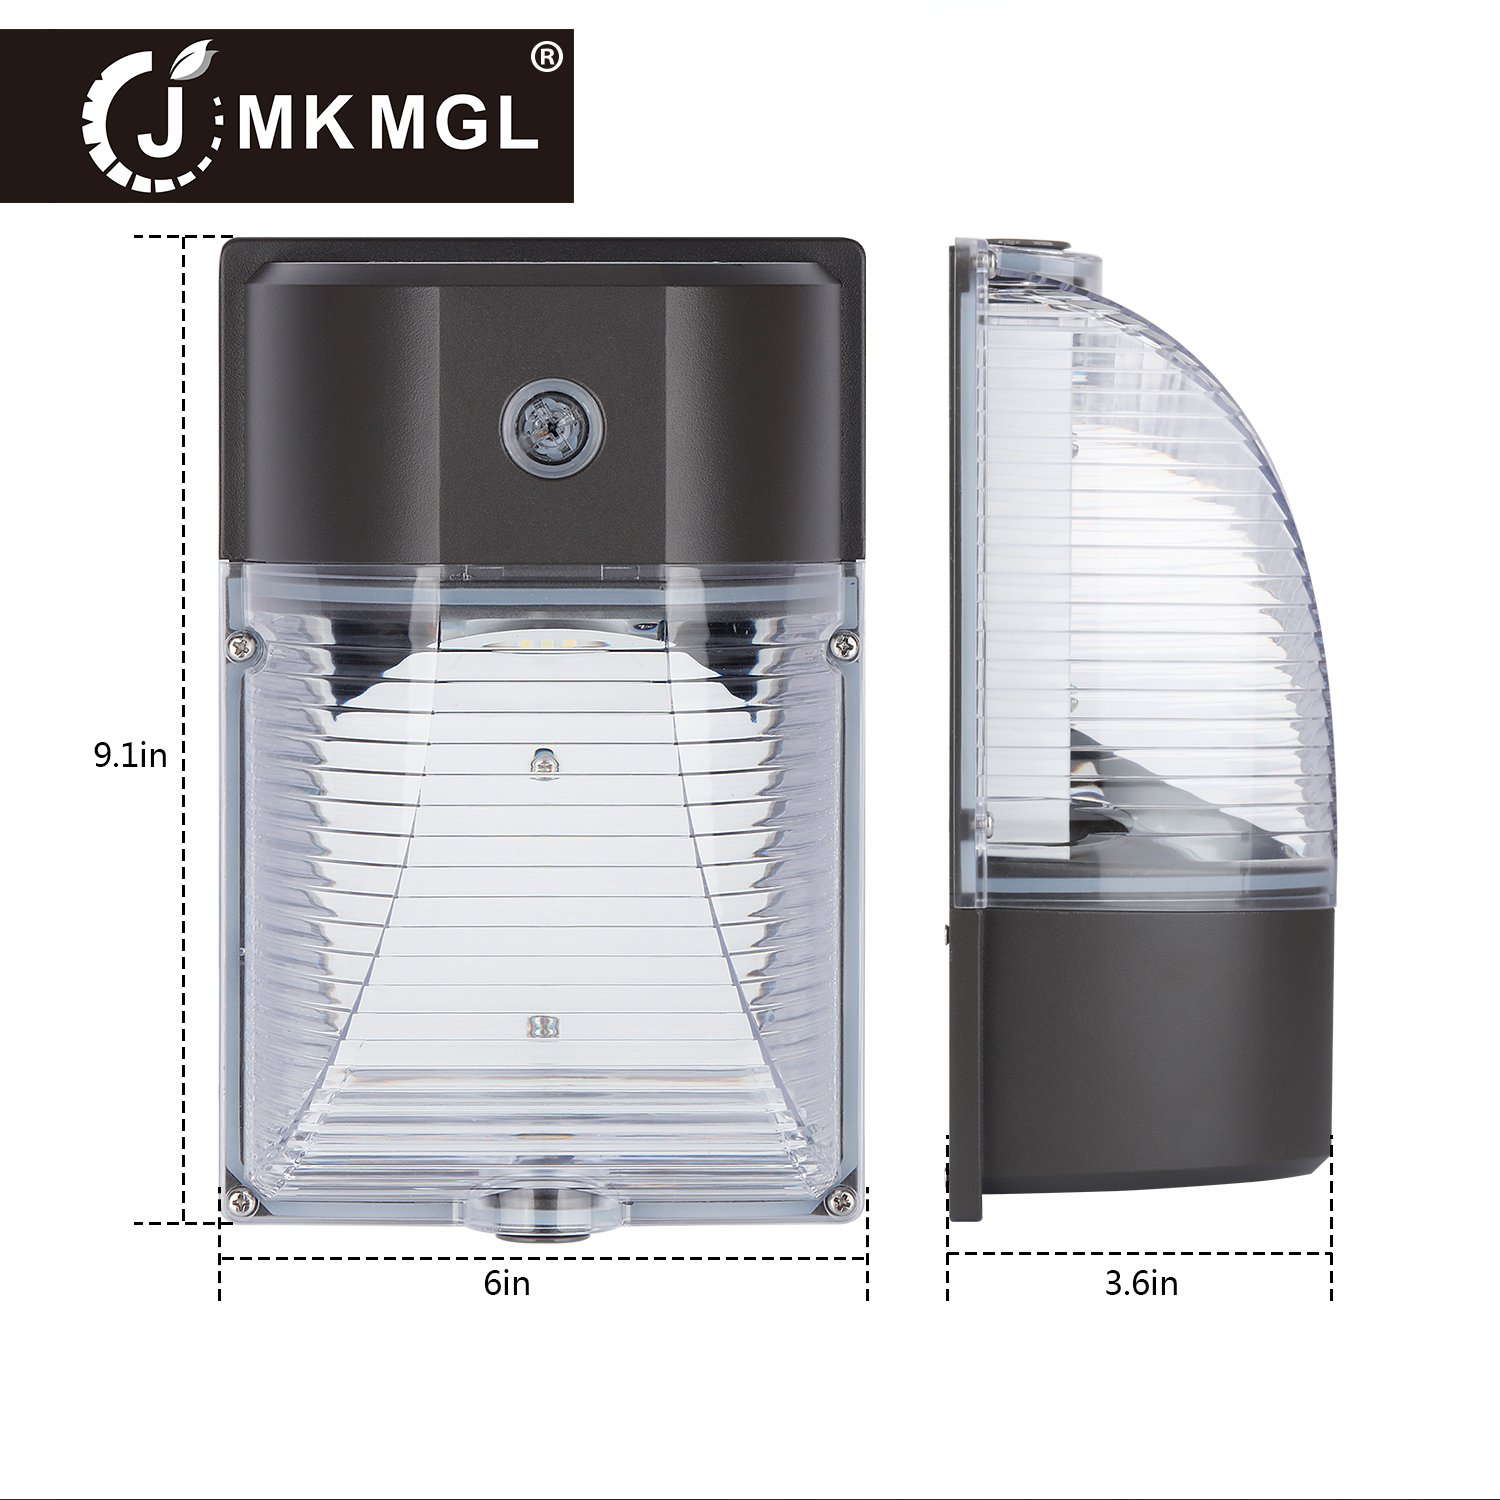 LED Wall Pack Light, JMKMGL 26W(150-250W Replacement),with Photocell Dusk to Dawn,3000LM 5000k Daylight White,IP65 Outdoor Security Lights,ETL-listed,5 Years Warranty(2 Pack 26 Watt)